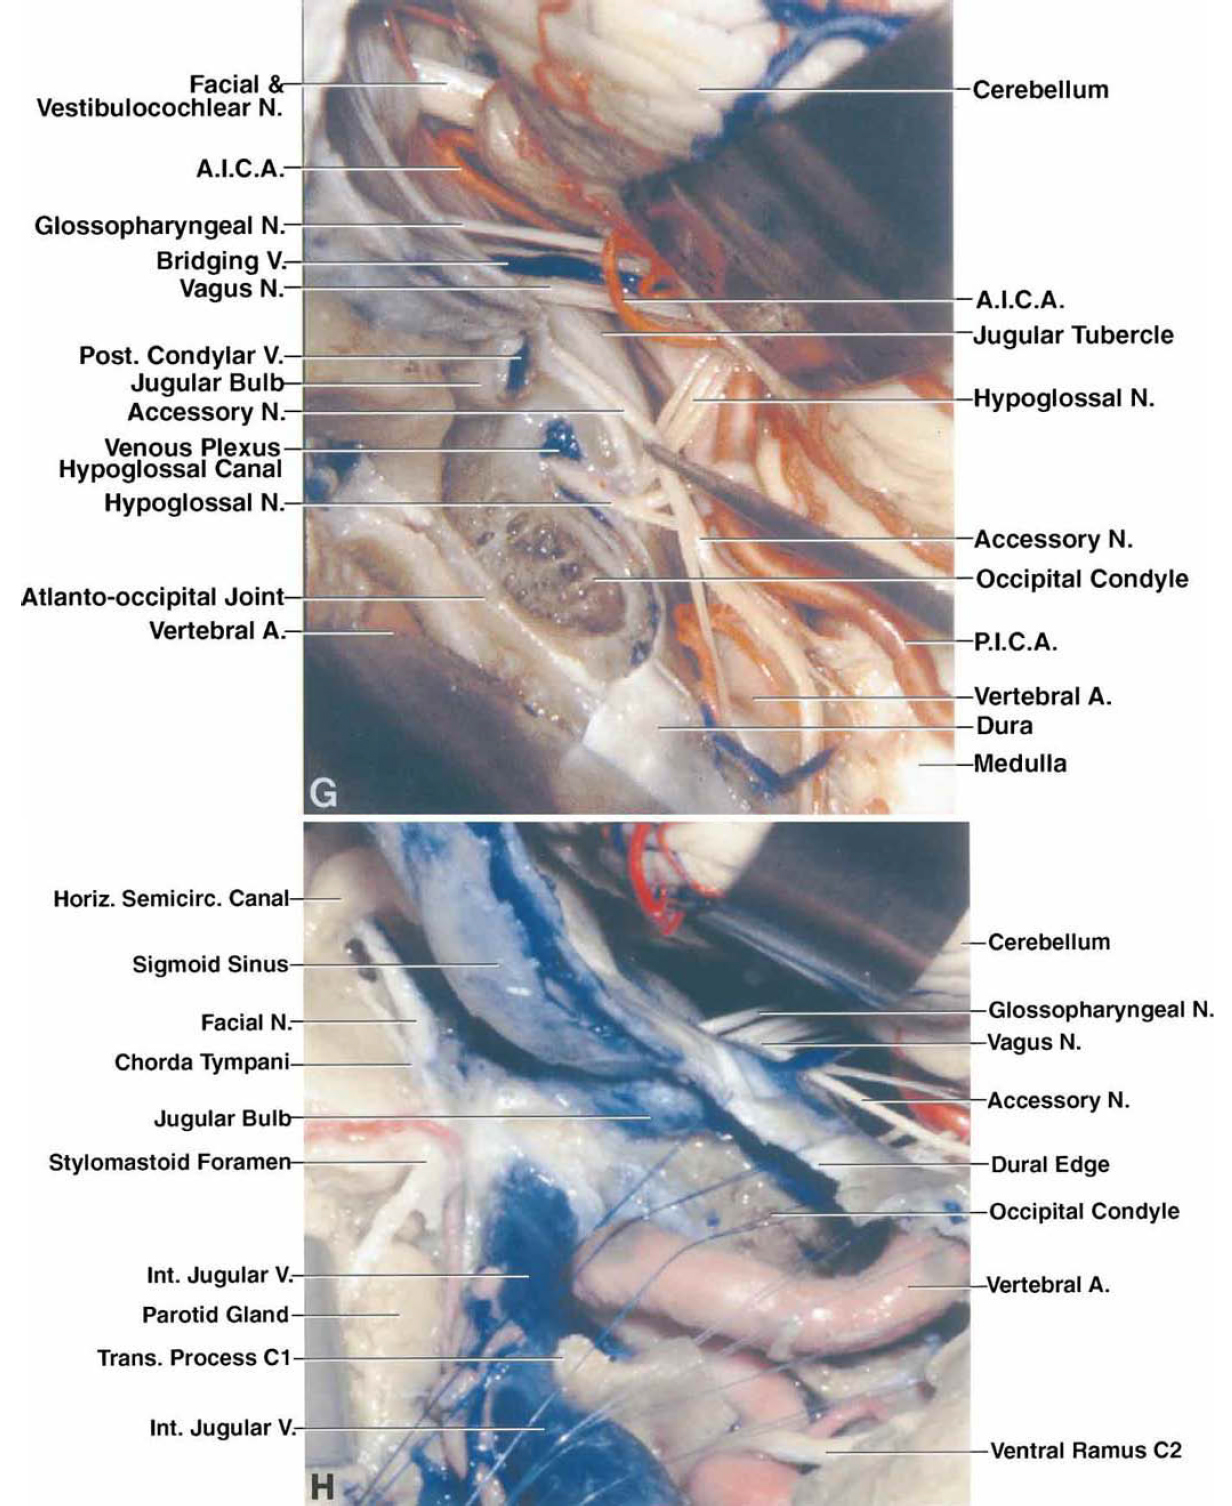 FIG. 4. G–H: Photographs obtained from the left side. G: A left suboccipital craniectomy has been completed and the dura opened. The cerebellum has been elevated to expose the vestibulocochlear nerve entering the internal acoustic meatus and the glossopharyngeal, vagus, and accessory nerves entering the jugular foramen. The bone posterior to the intracranial end of the hypoglossal canal has been removed to expose the nerve entering the canal. The accessory nerve ascends behind the VA and passes across the posterior surface of the jugular tubercle. The medial portion of the jugular bulb has also been exposed. The posterior condylar vein passes above the condyle and the hypoglossal canal to empty into the terminal portion of the sigmoid sinus. A bridging vein passes from the lateral aspect of the medulla to the jugular bulb. H: The rectus capitis lateralis muscle and the posterior belly of the digastric bone have been detached and the jugular process of the occipital bone has been removed to expose the jugular bulb in the jugular foramen. A mastoidectomy has been completed to expose the mastoid segment of the facial nerve and the stylomastoid foramen, which are located lateral to the jugular foramen and the jugular bulb.